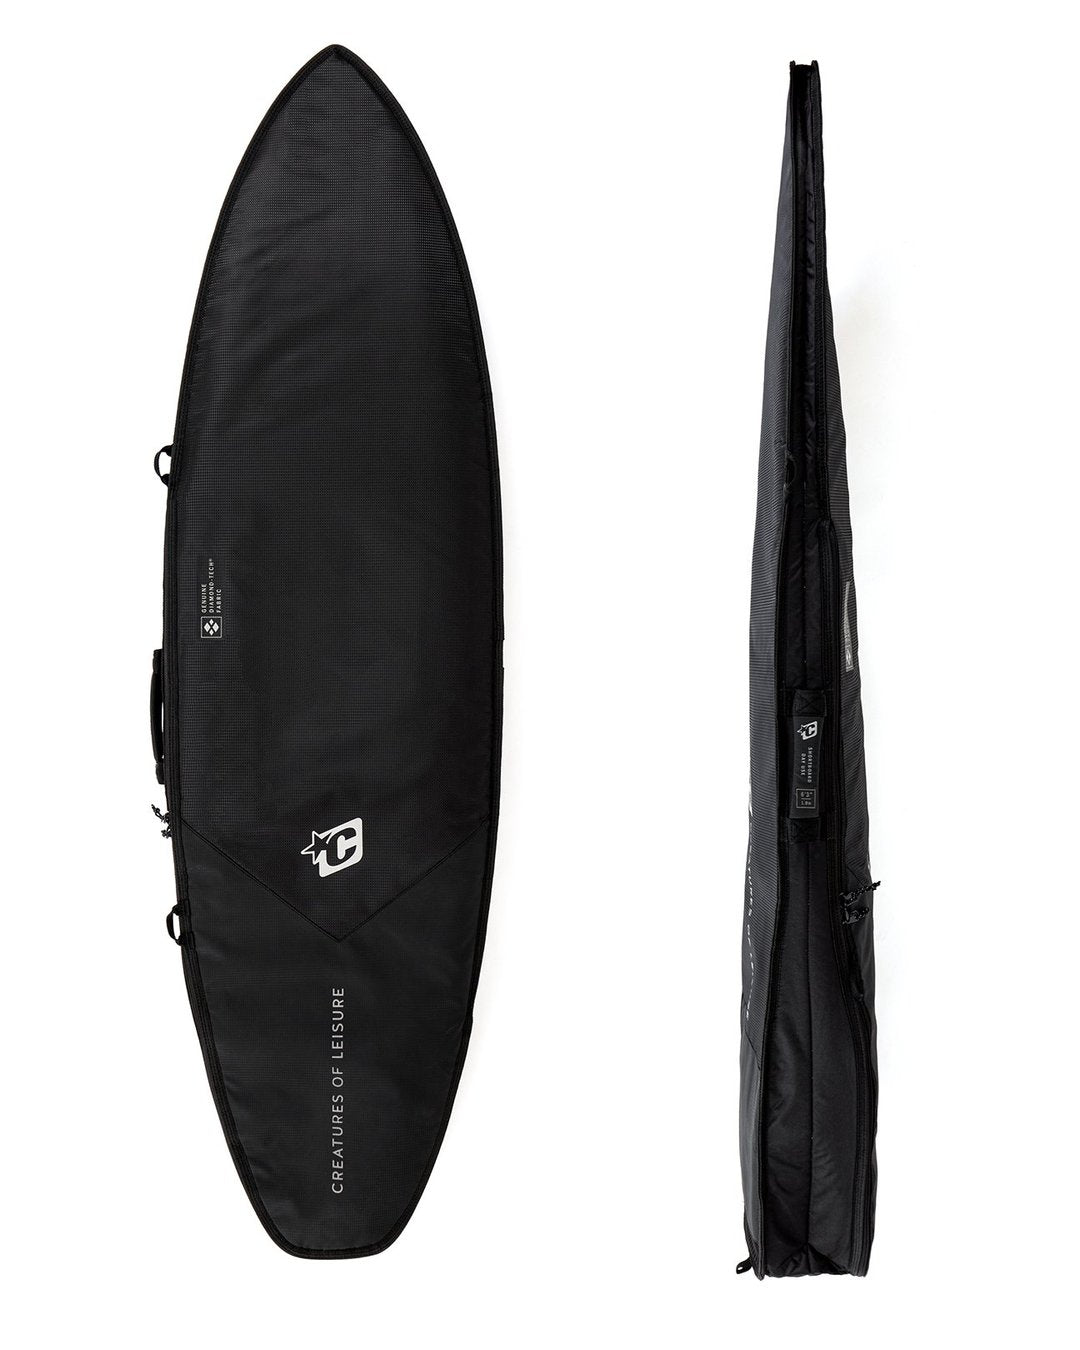 "Creatures SHORTBOARD DAY USE DT2.0 7'1"" : BLACK SILVER - Board Store CreaturesBoardcover"